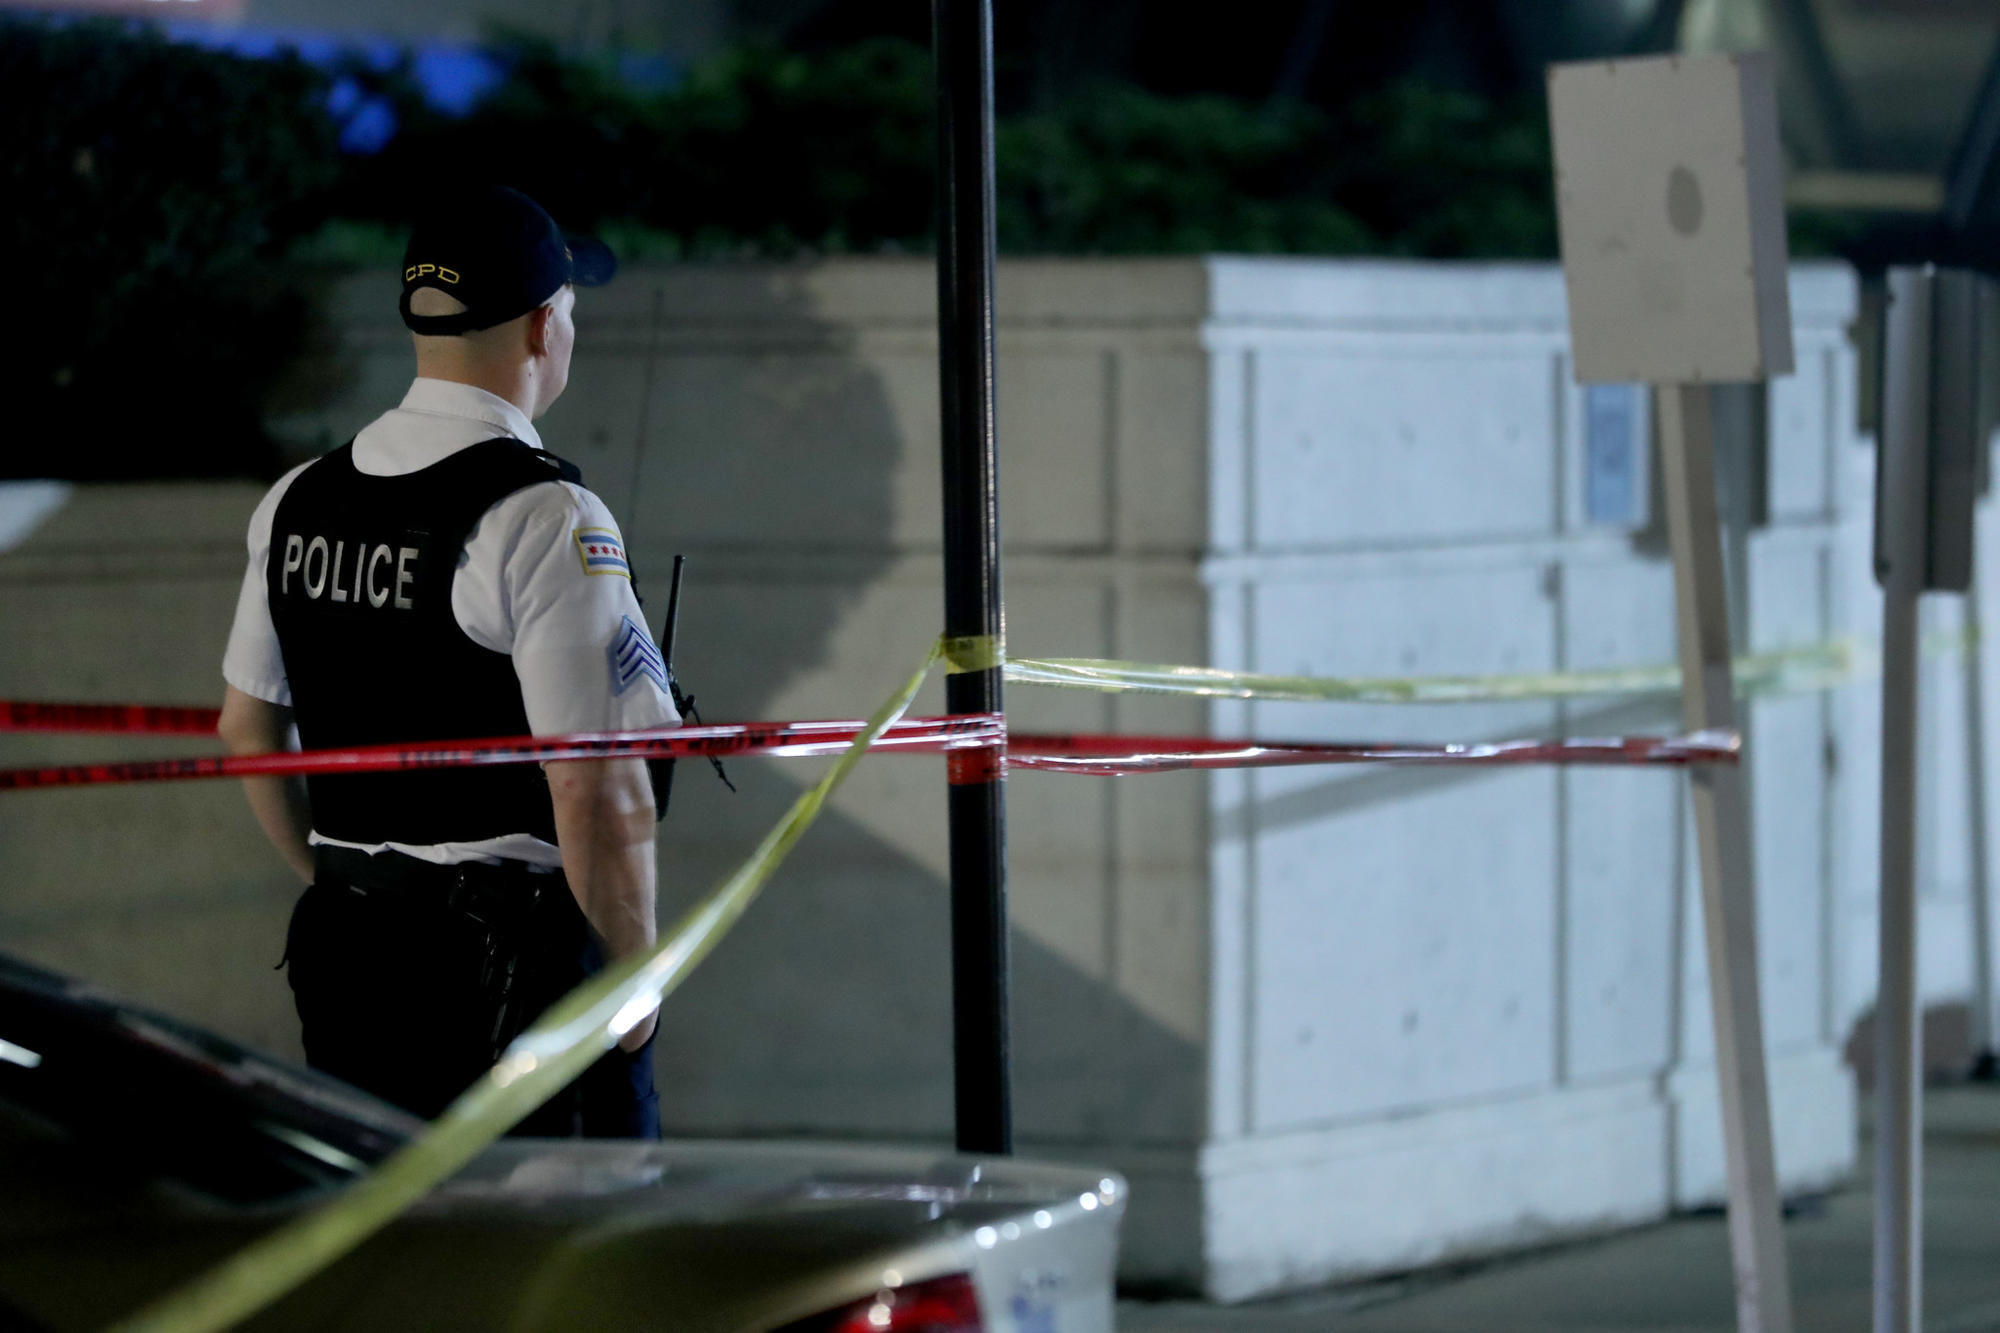 Chicago sees its most violent week of the year: 9 killed, 76 wounded